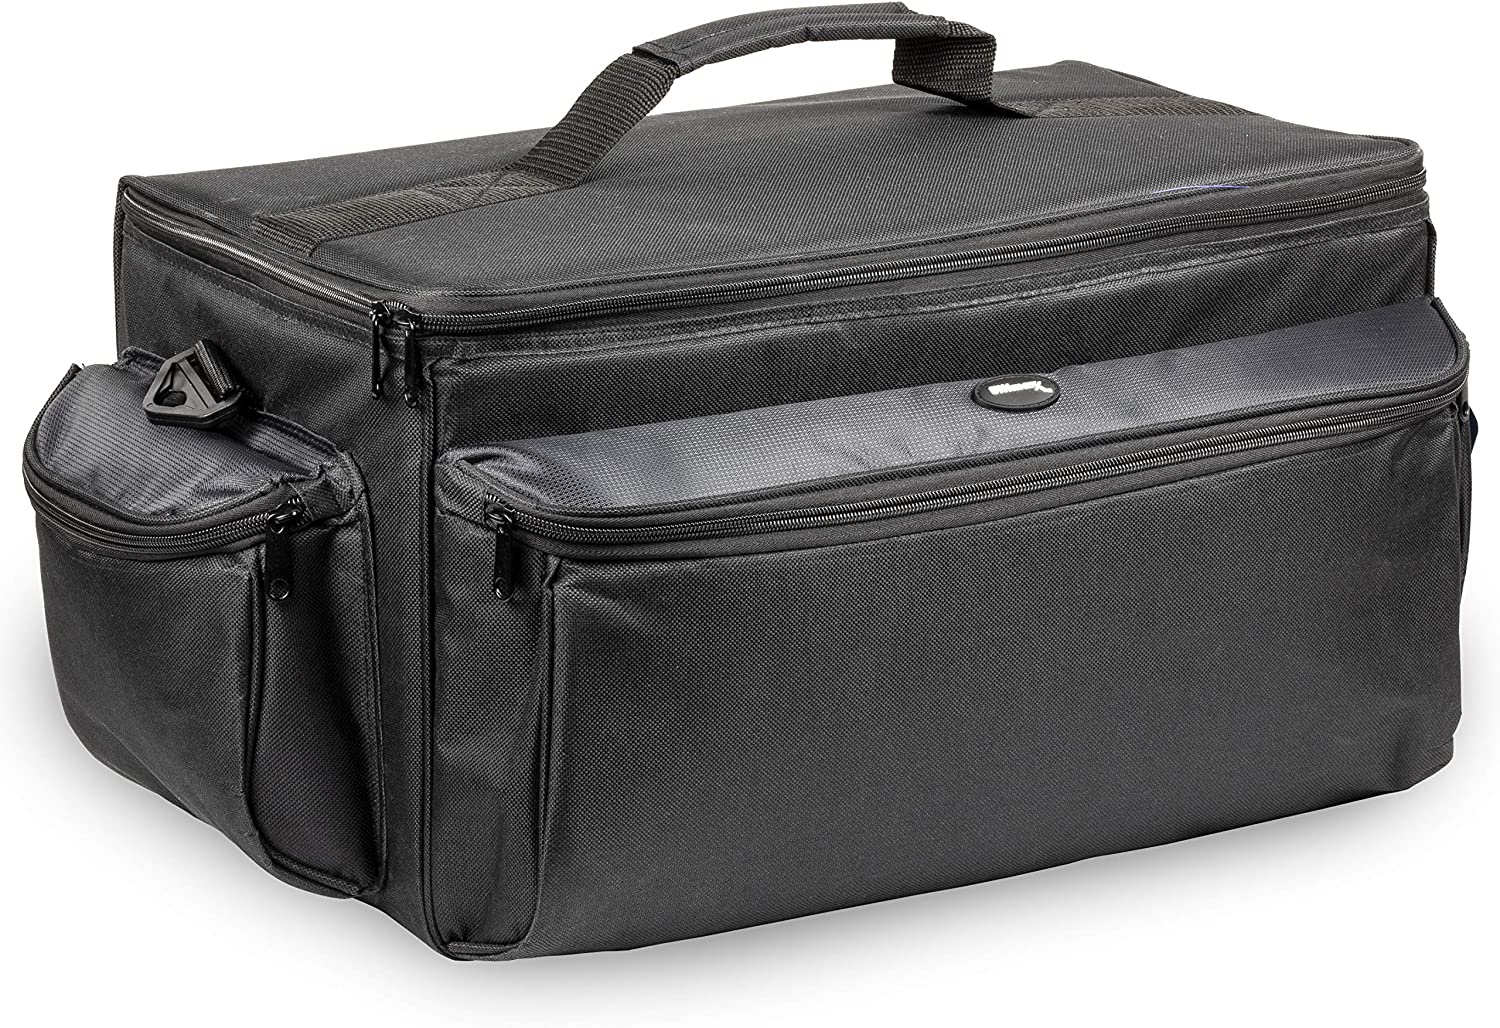 PXW-X160 Ultimaxx/'s Professional Well-Padded Extra-Large Water-Resistant Gadget Bag Compatible with Sony /PXW-Z100 PXW-Z150 and More. PXW-X180 PXW-X200